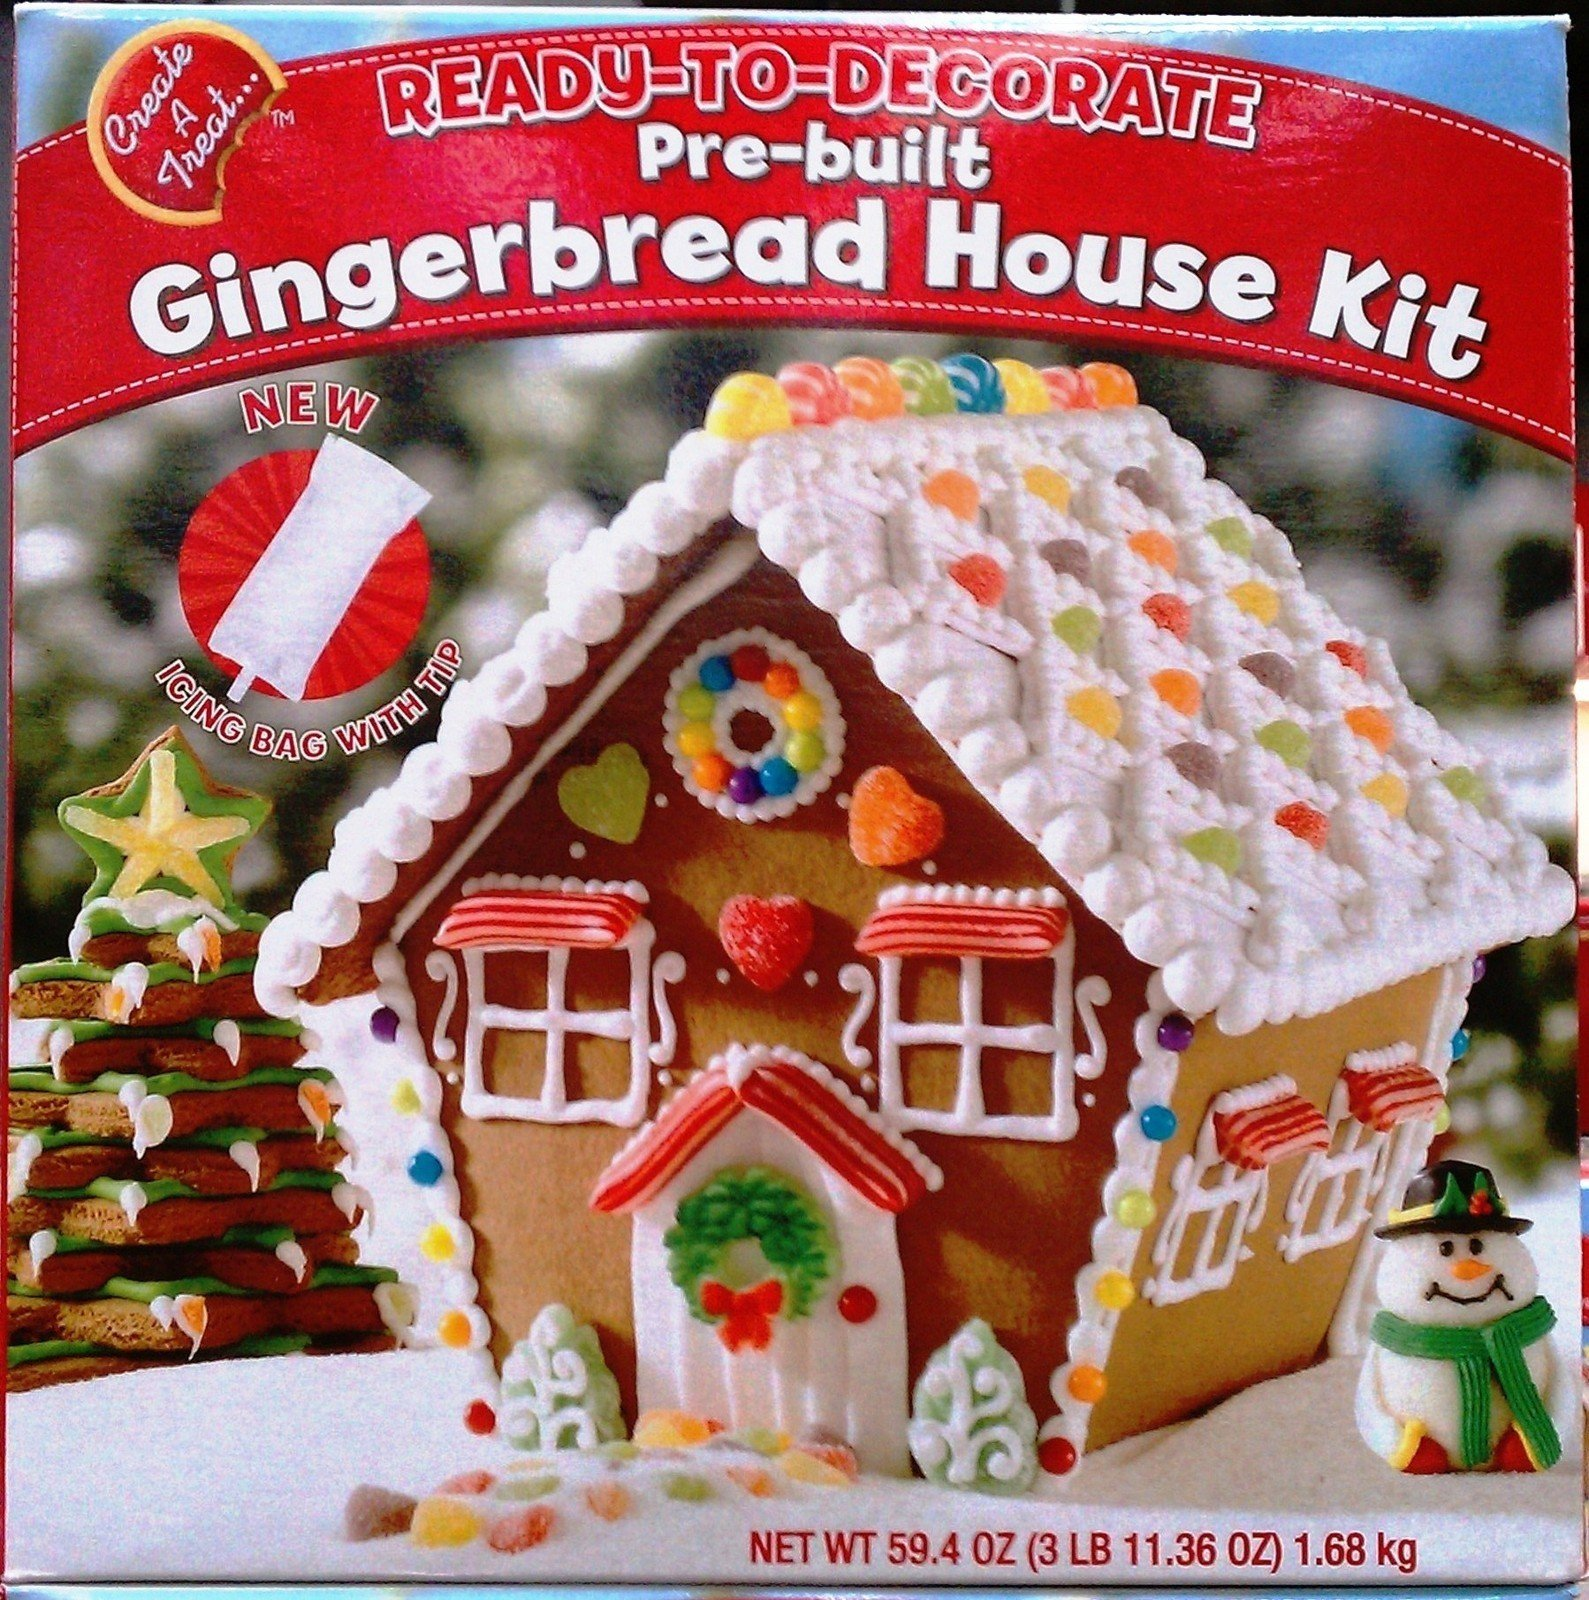 Ready to Decorate Prebuilt Gingerbread House Kit 59.4 Oz